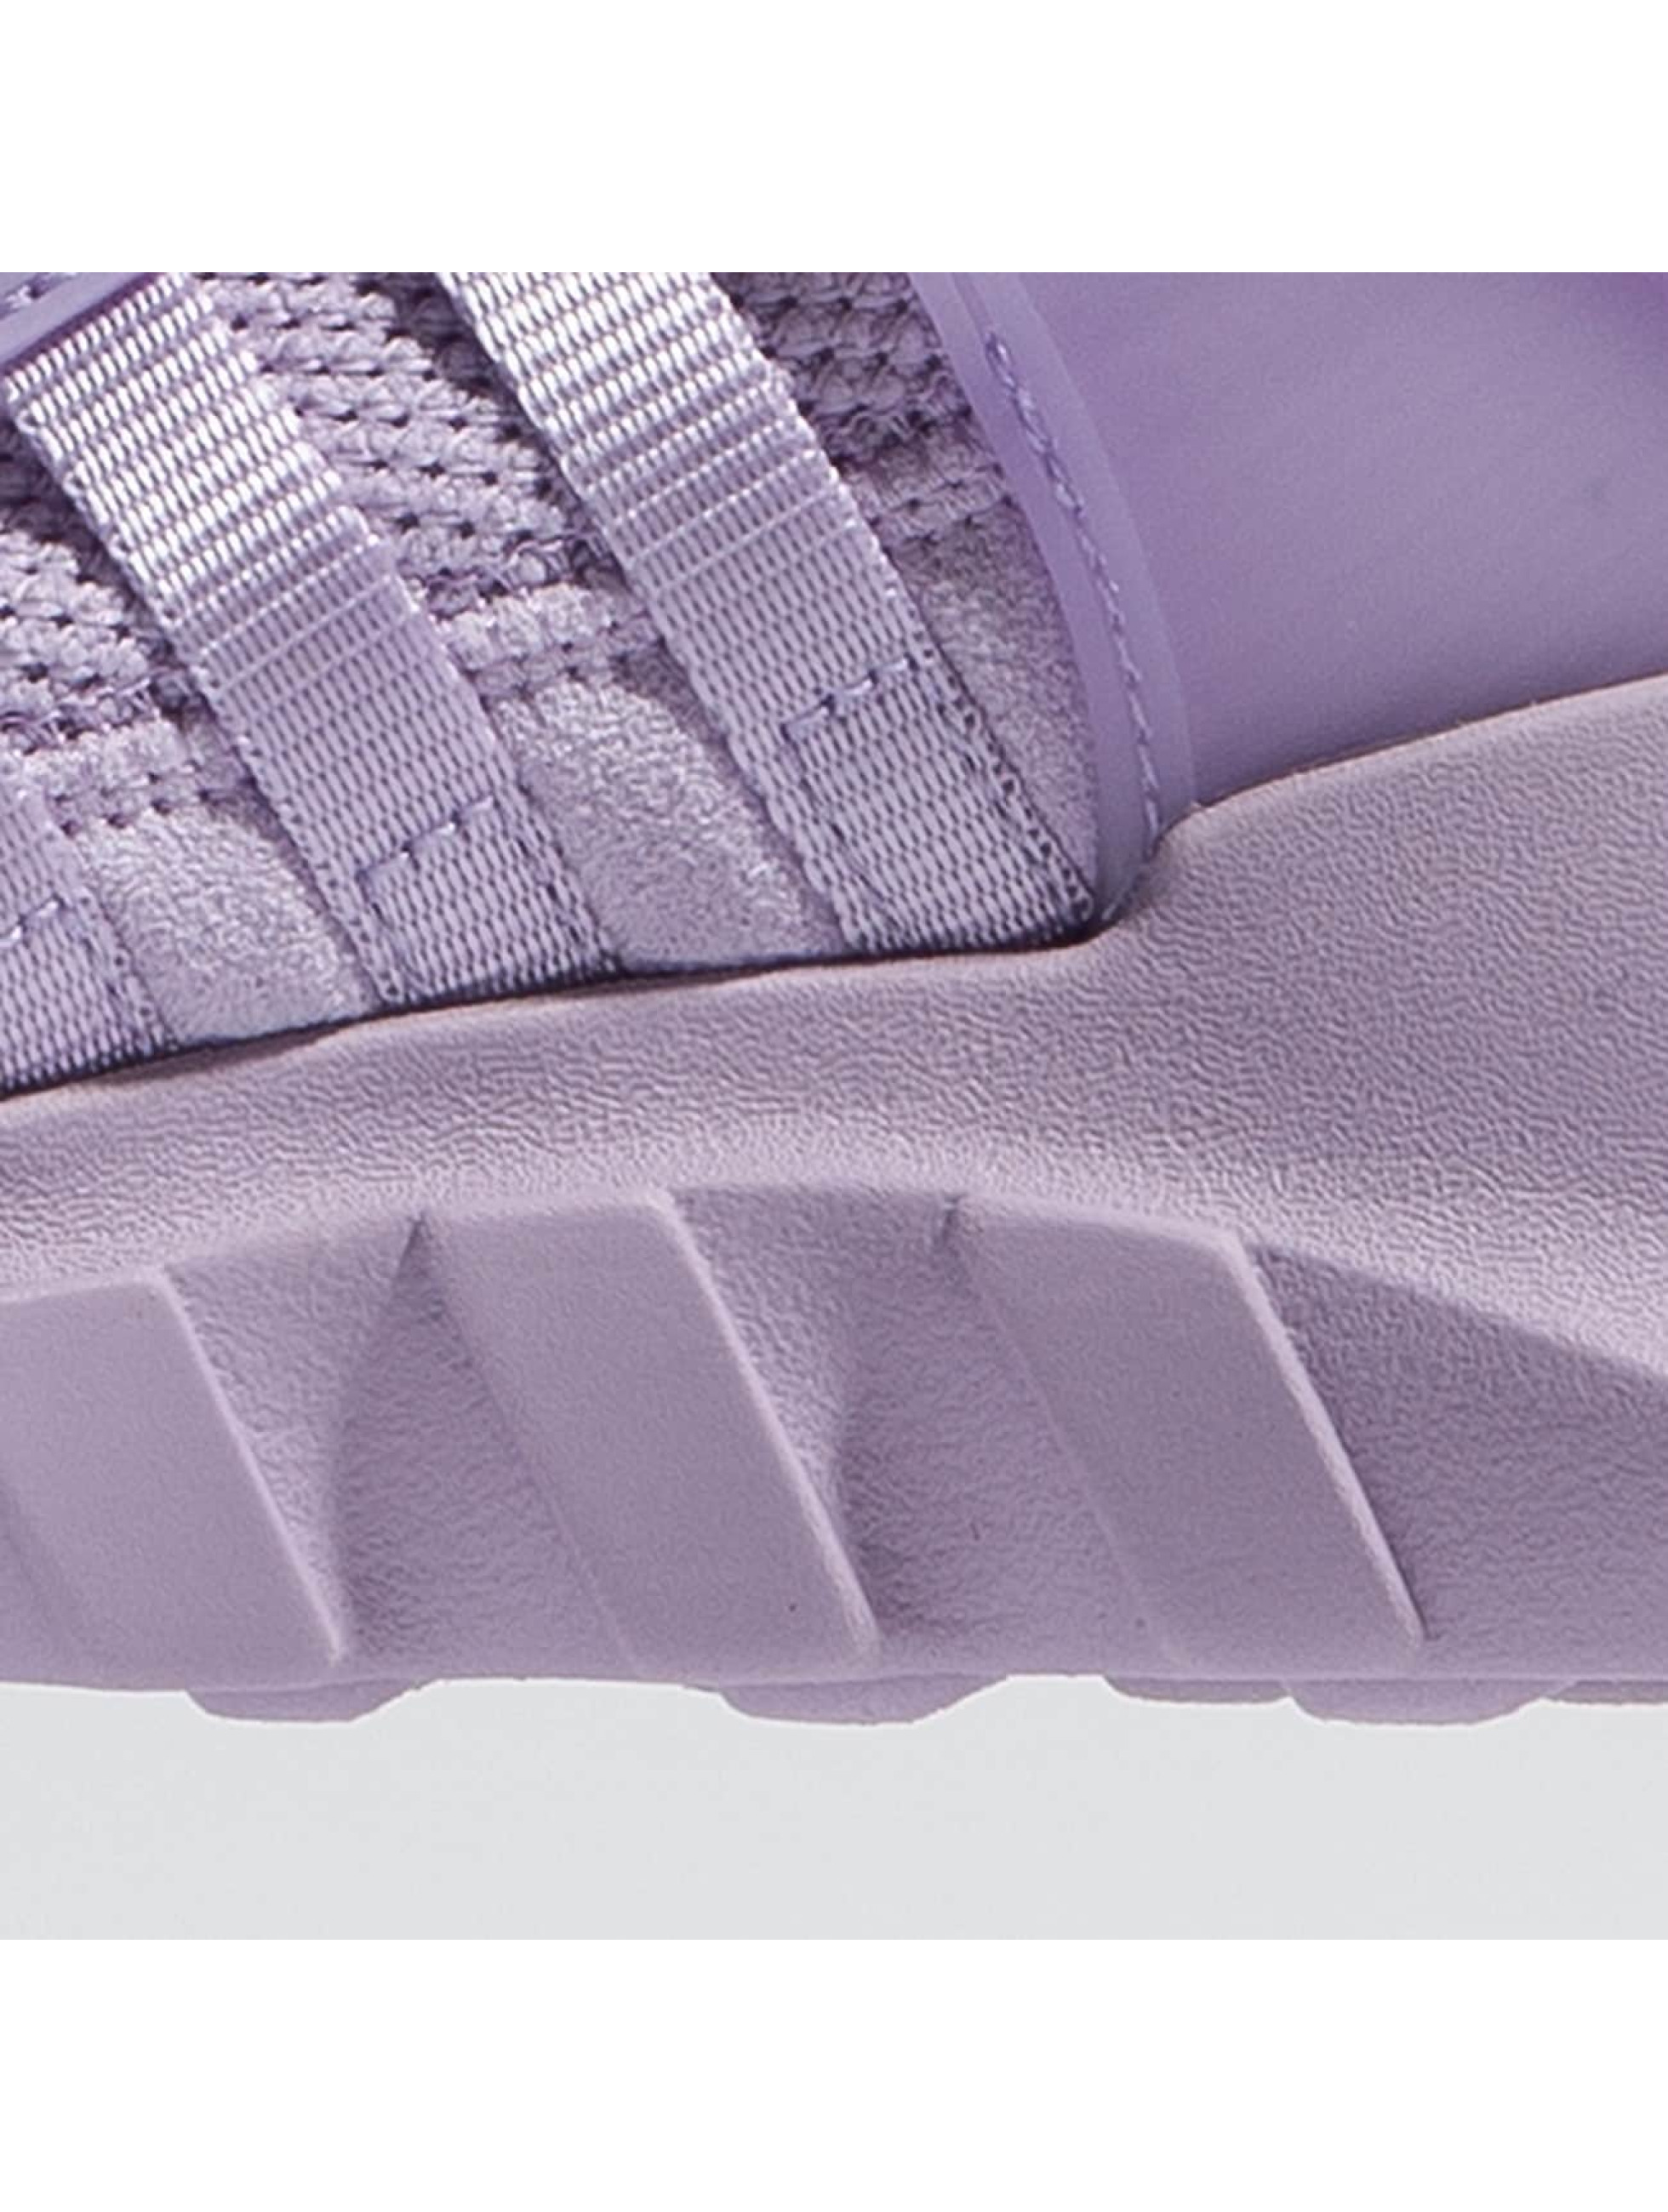 adidas Baskets Equipment Support ADV pourpre